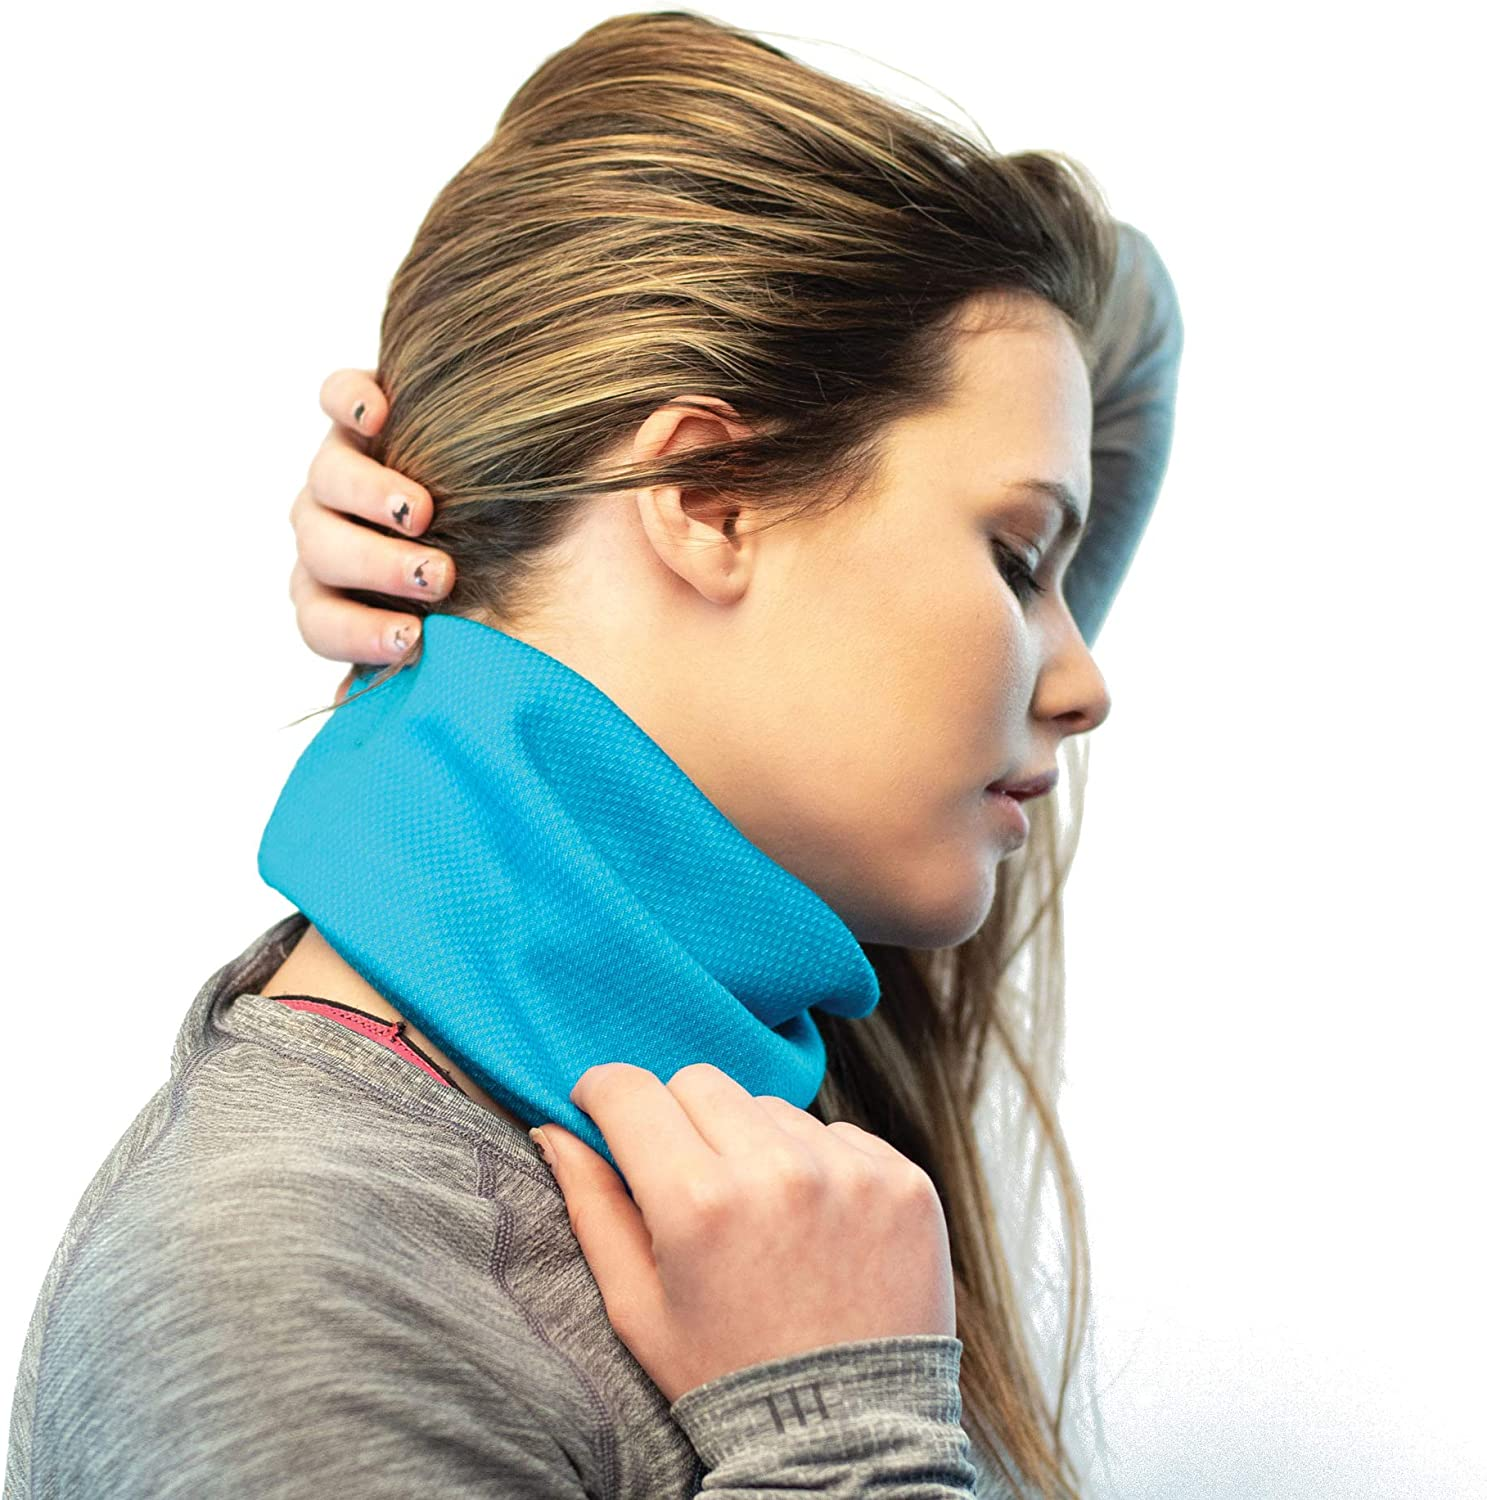 Ideal Neck Gaiter Perfect for Cold Weather Running Red Dust Active Merino Wool Blend Neck Gaiter Winter Neck Warmer for Active Women